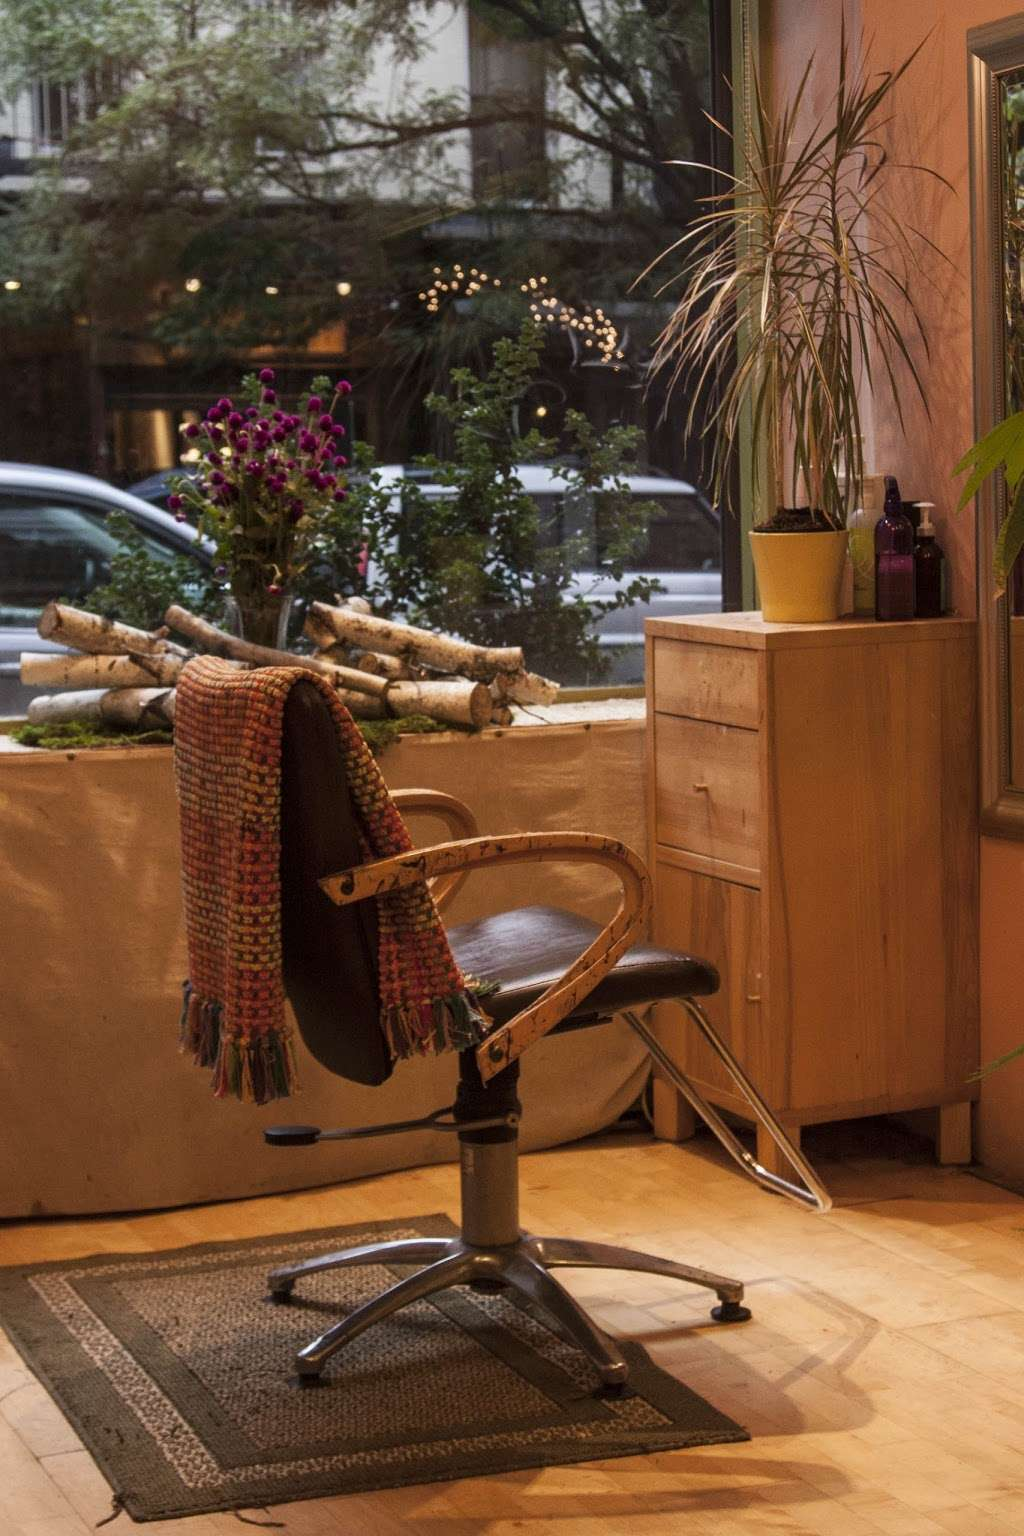 Swing Organic Salon - hair care  | Photo 3 of 7 | Address: 280 E 10th St, New York, NY 10009, USA | Phone: (212) 677-2008